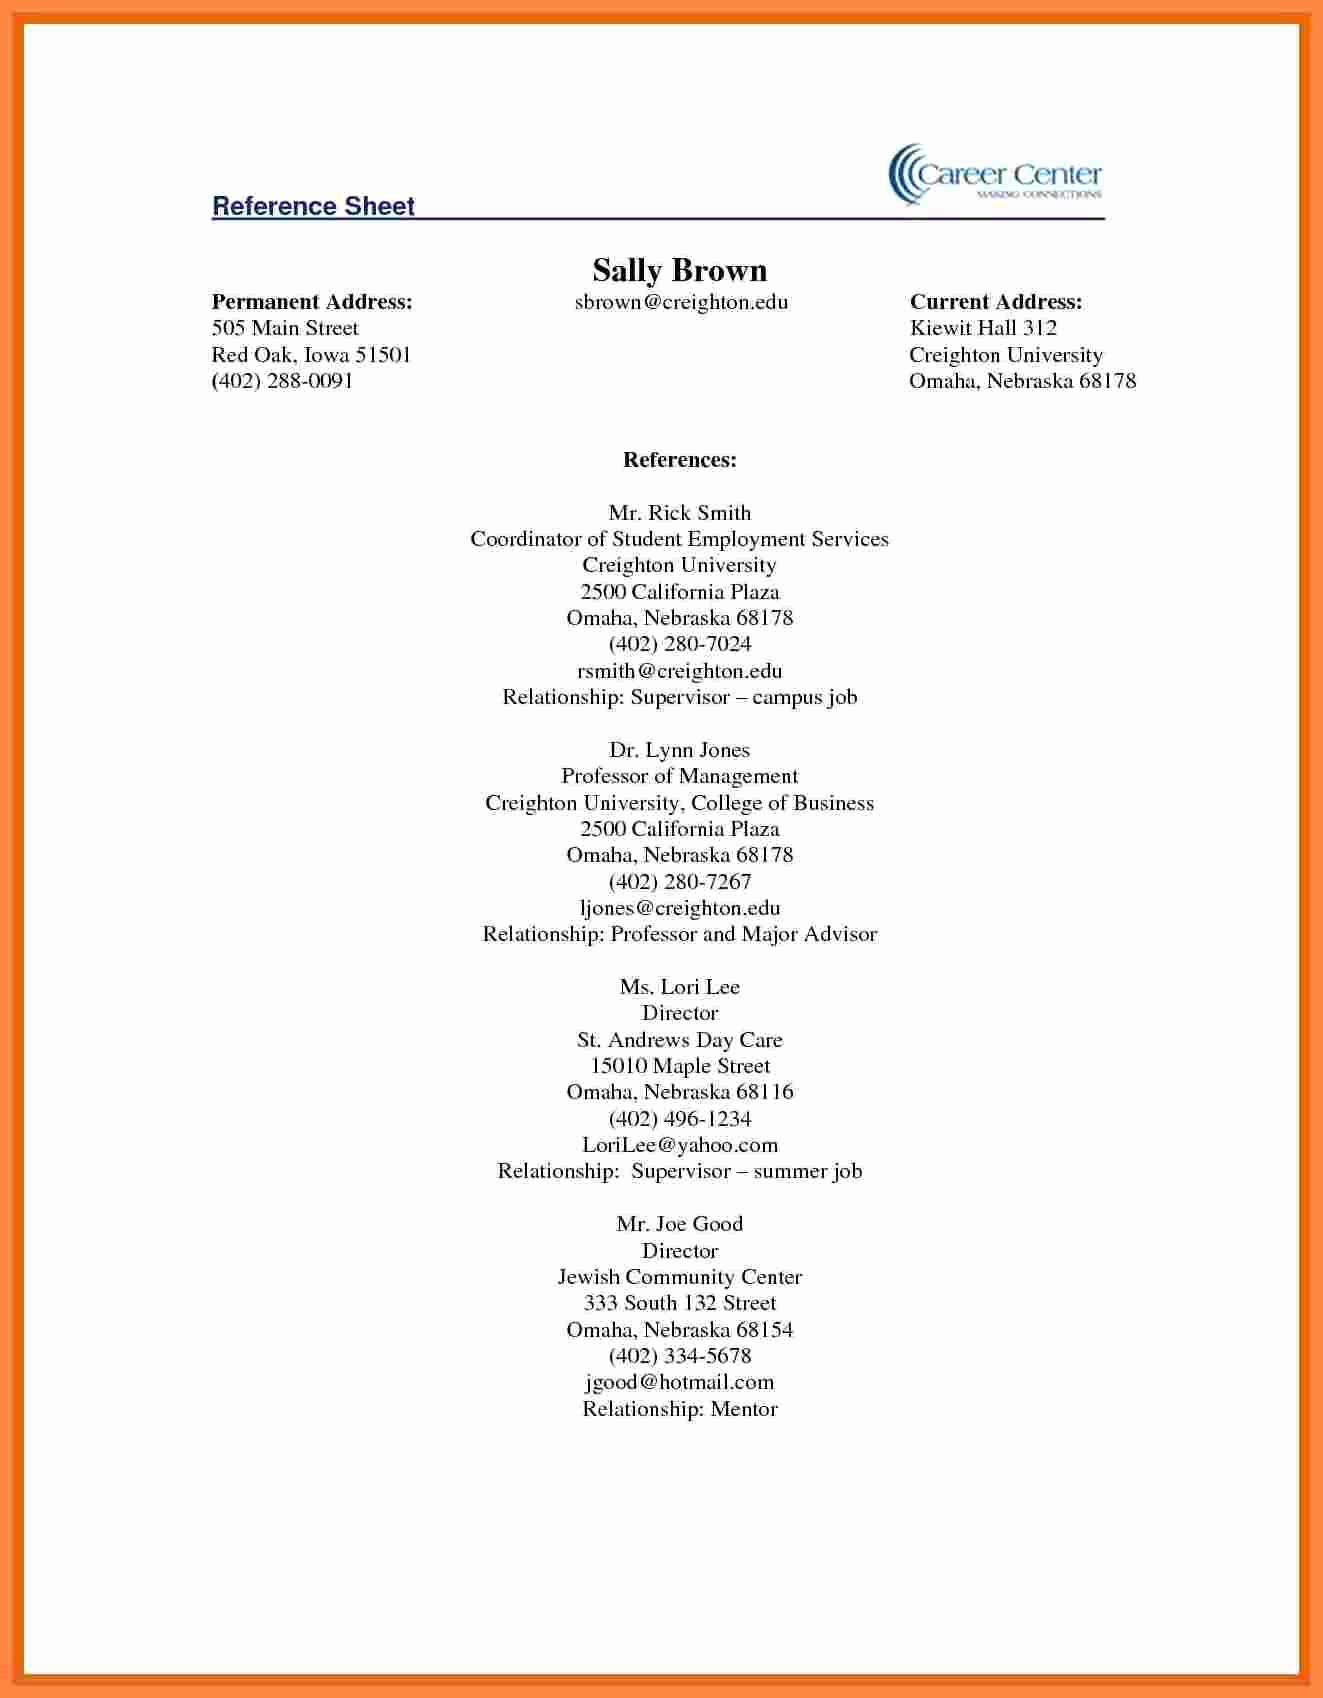 Reference Sheet for Resume Template Luxury 5 Reference Sheet for Resume Template